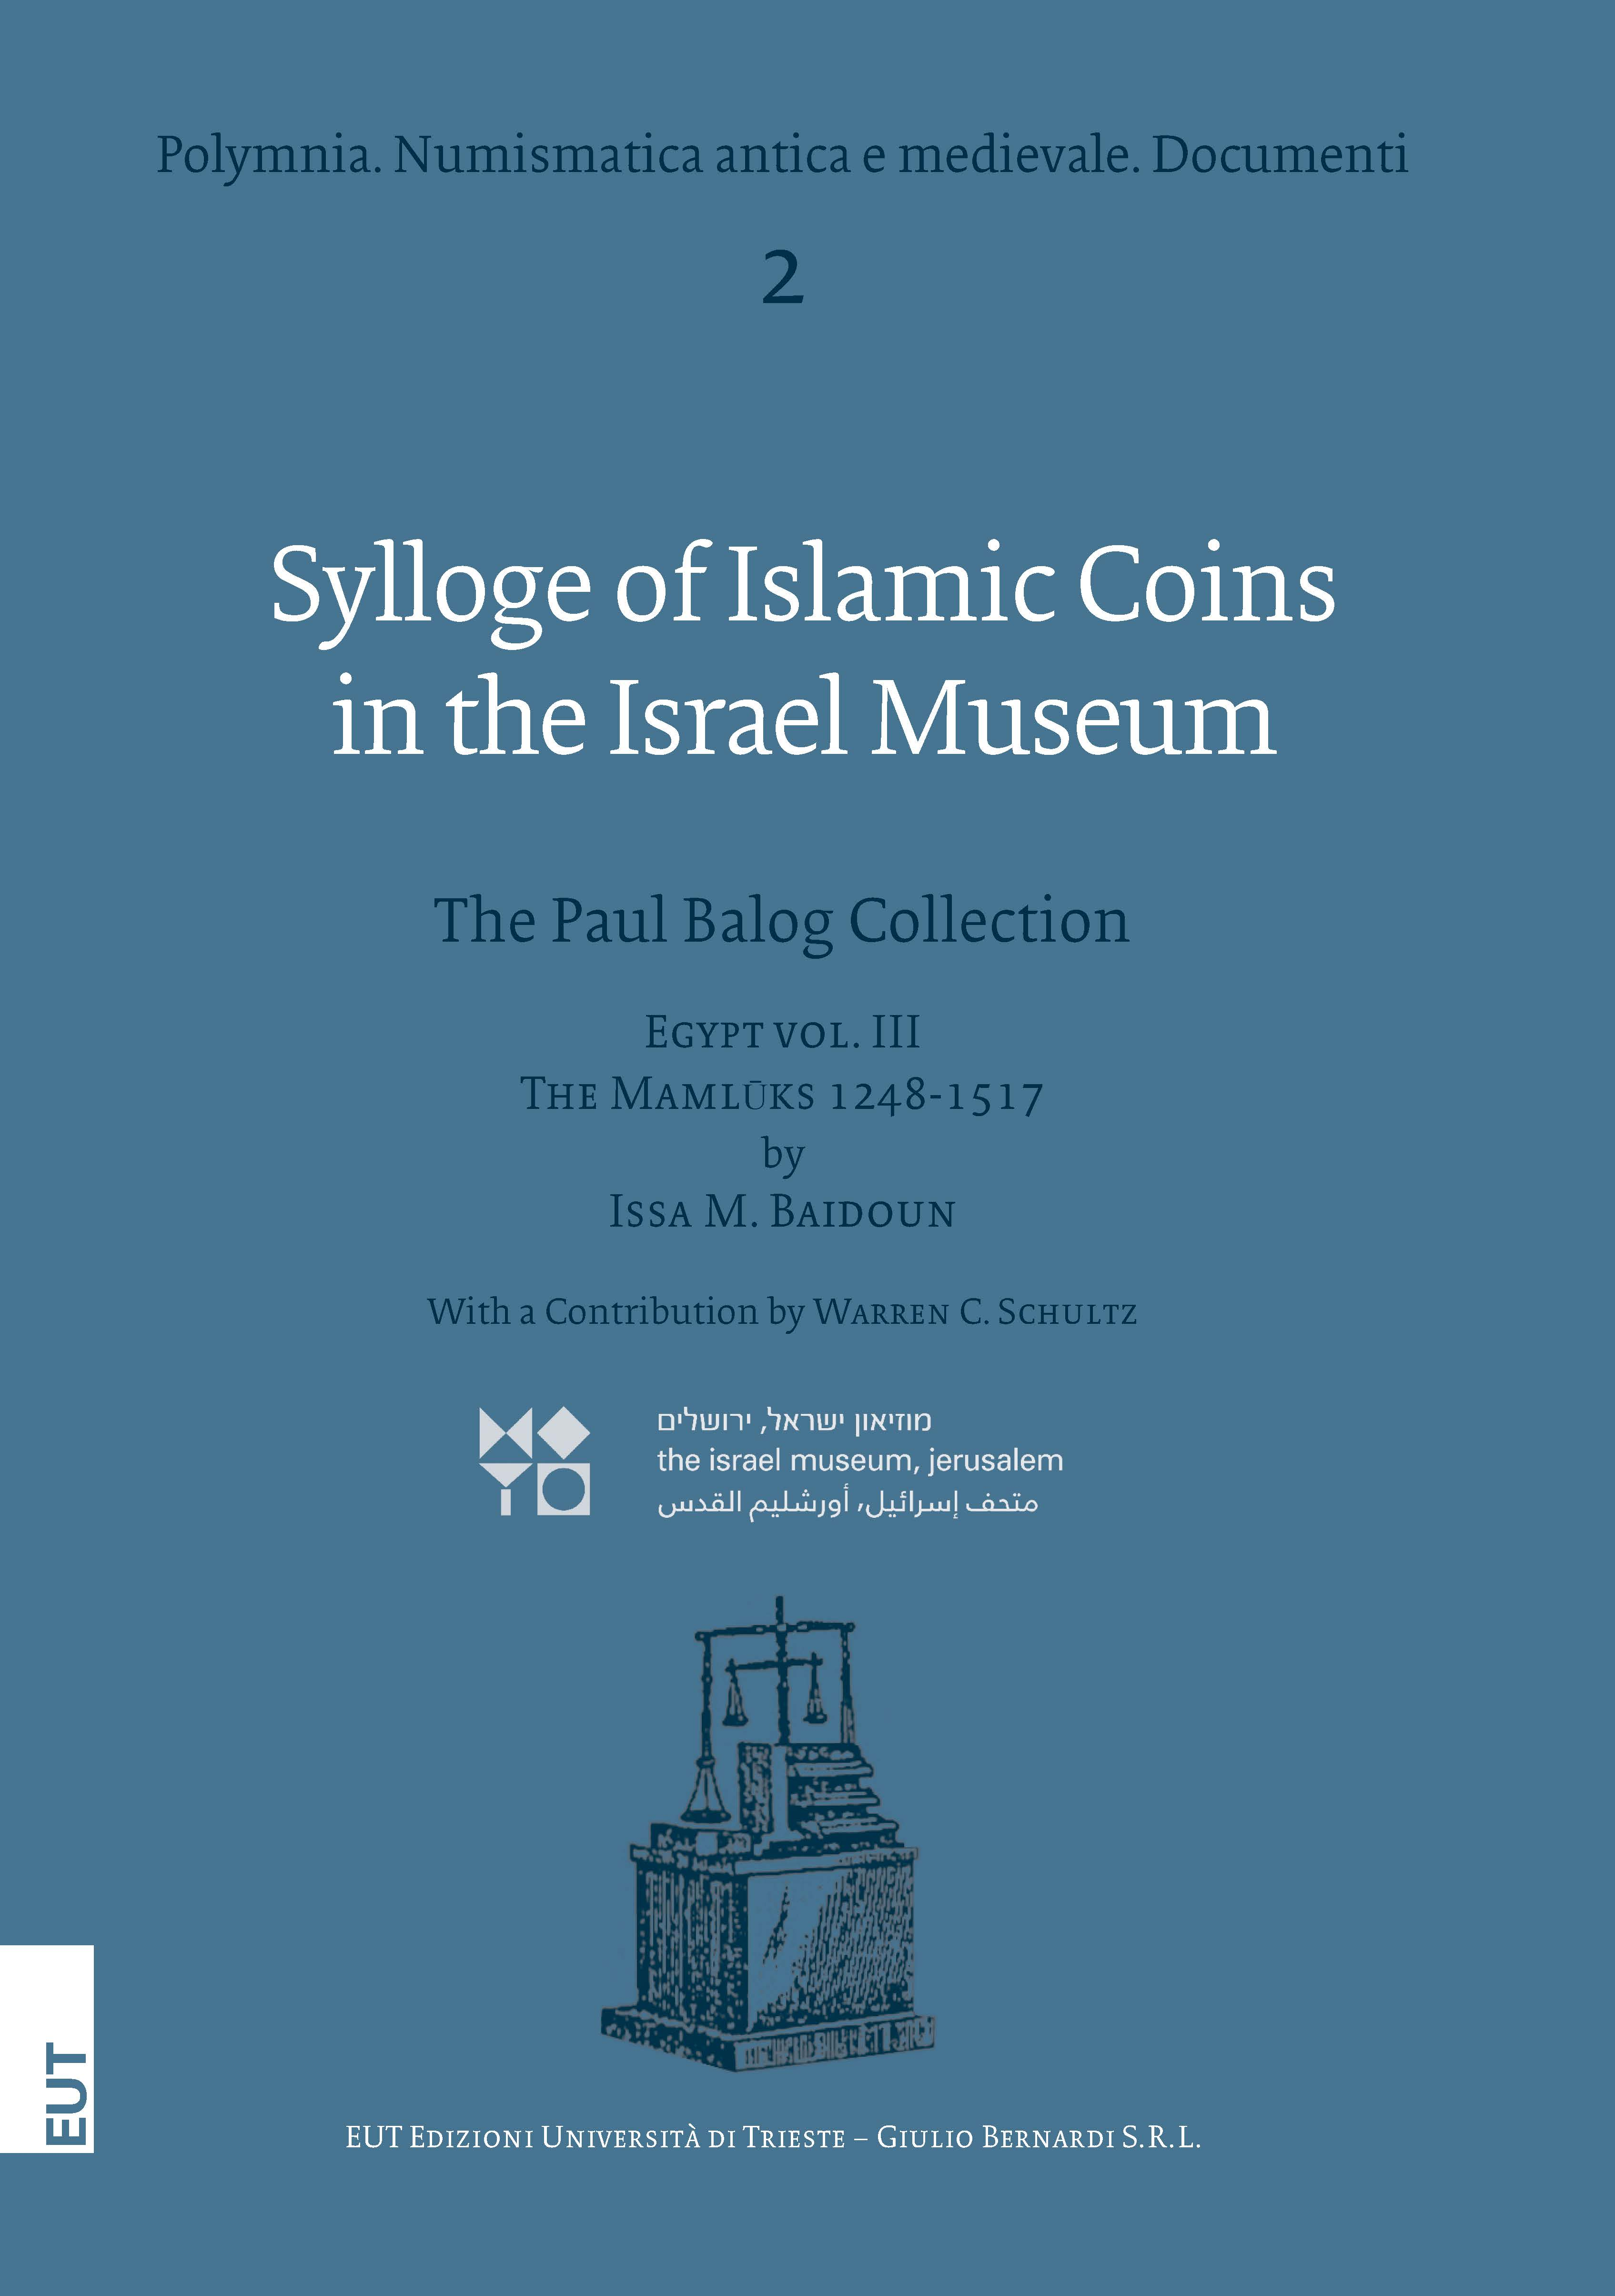 Sylloge of Islamic Coins in the Israel Museum. The Paul Balog Collection. Egypt vol. III The Mamlūks 1248-1517